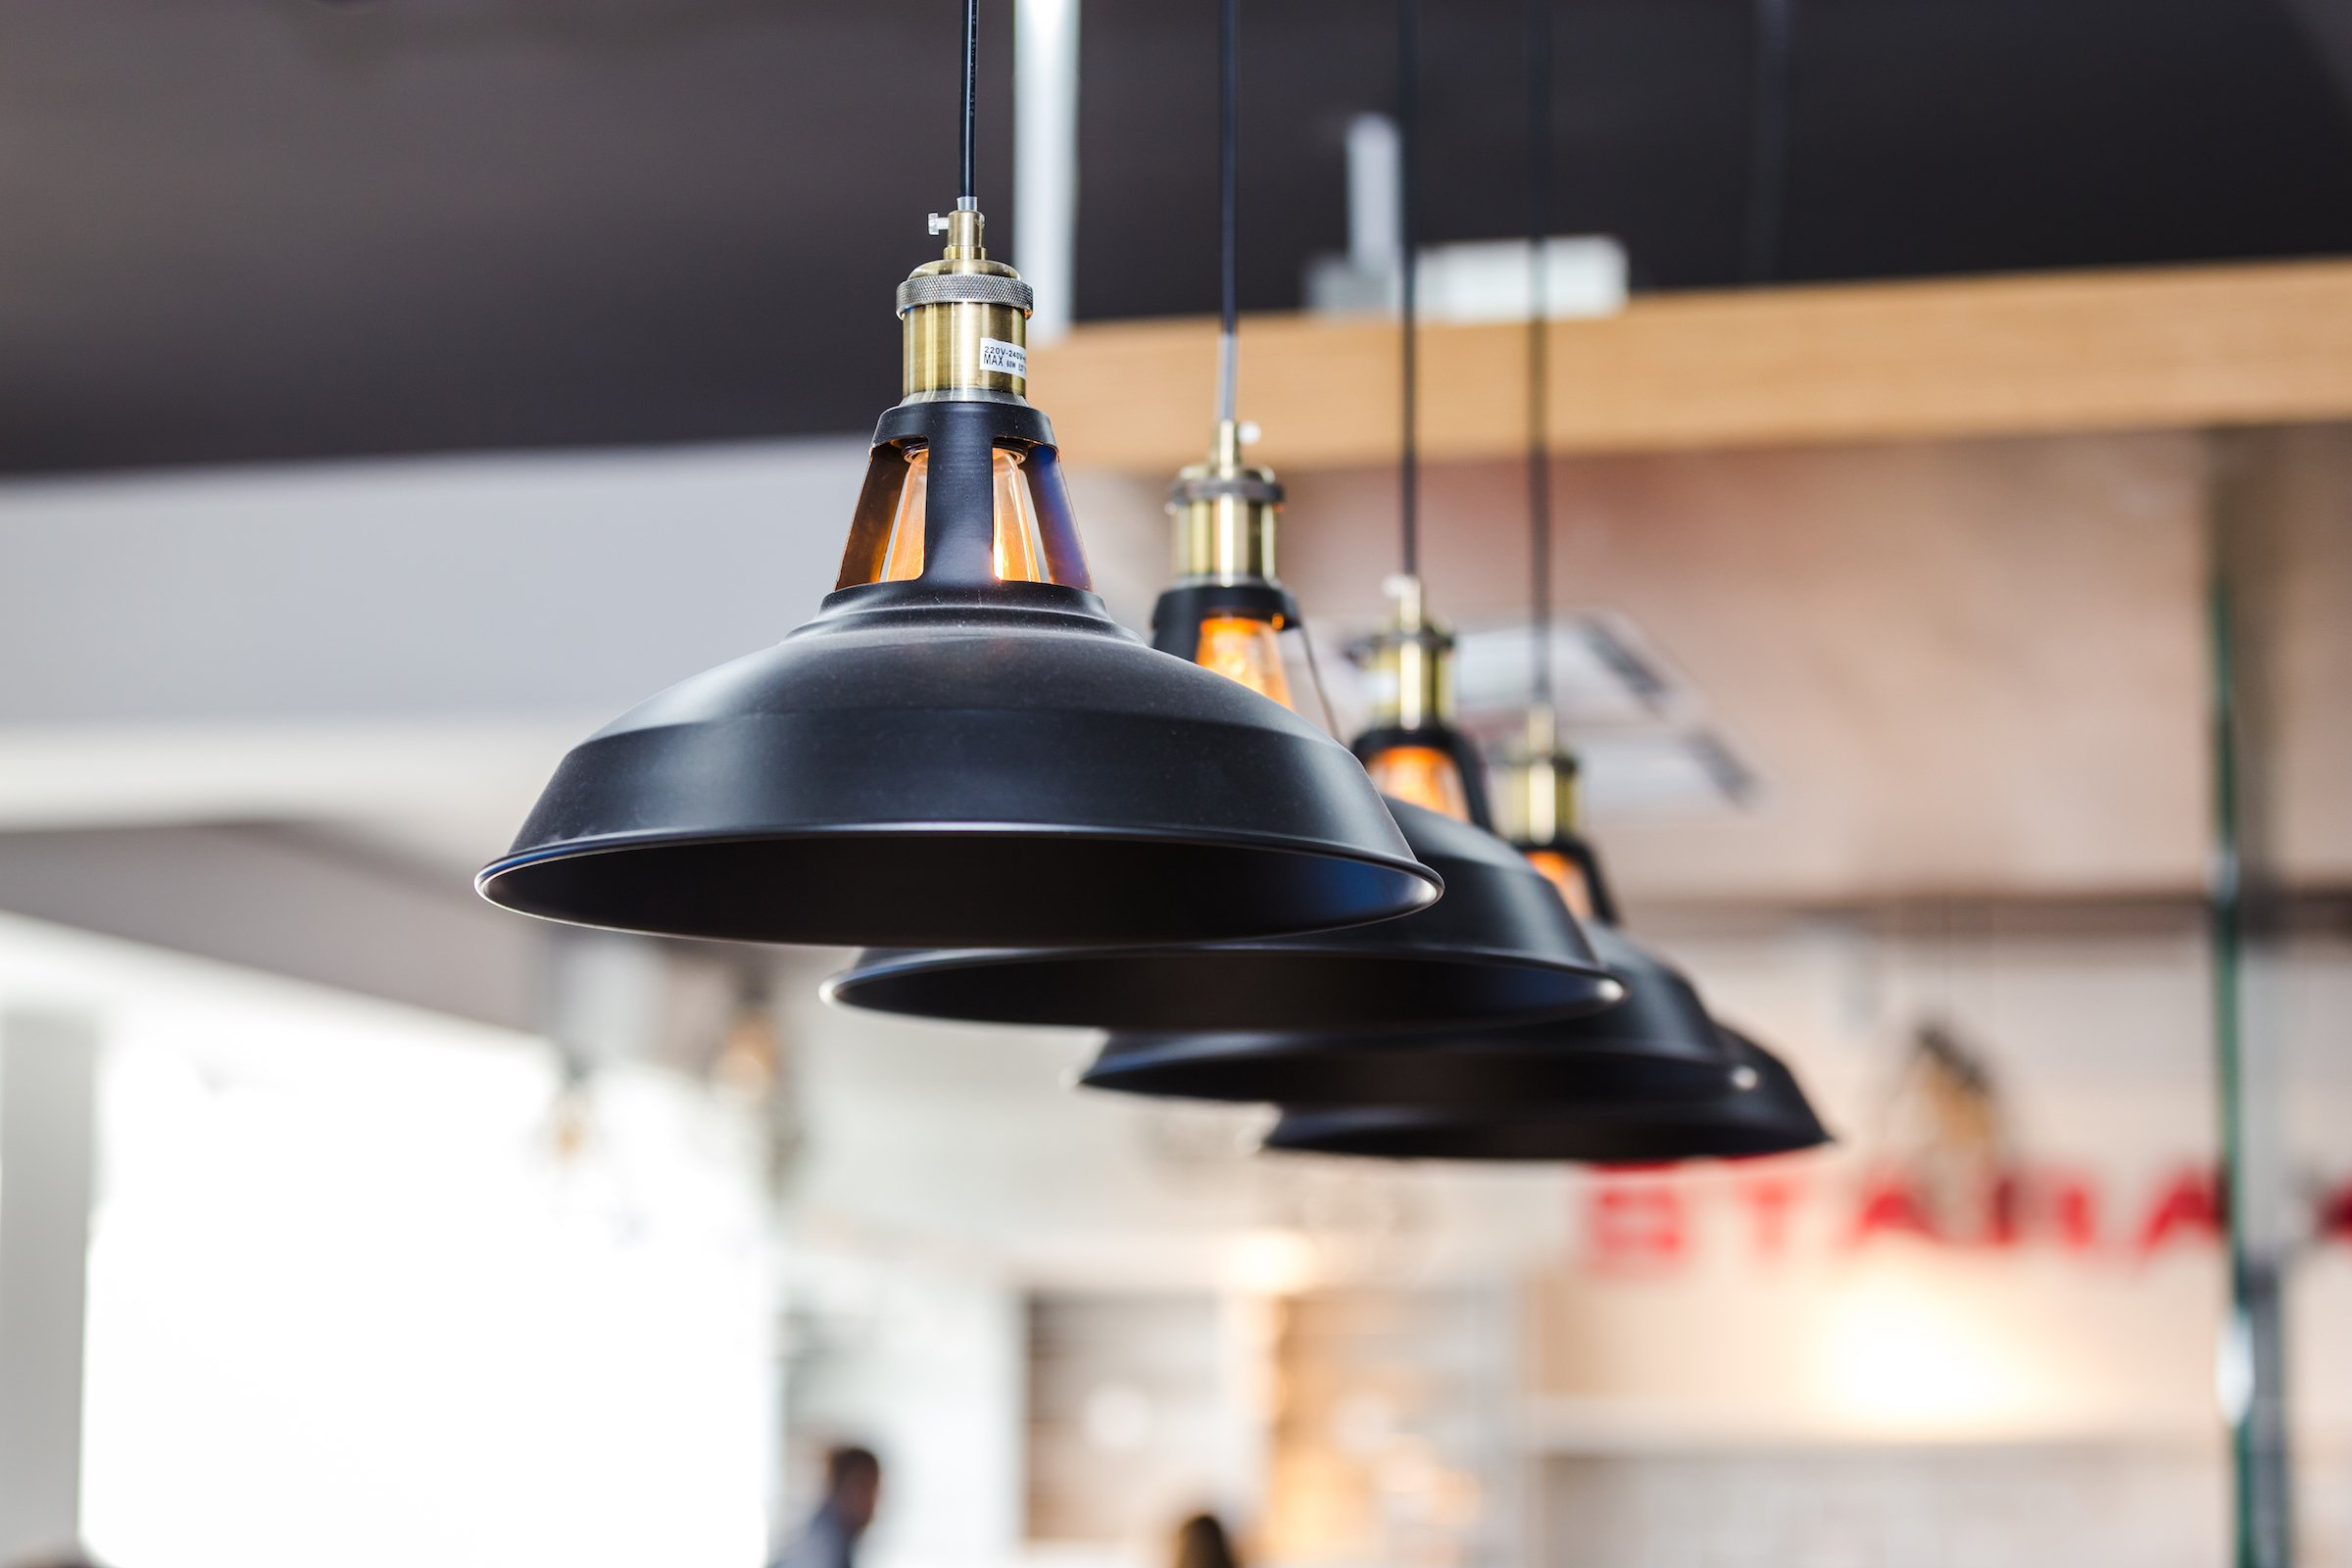 How much it costs to install pendant lighting.